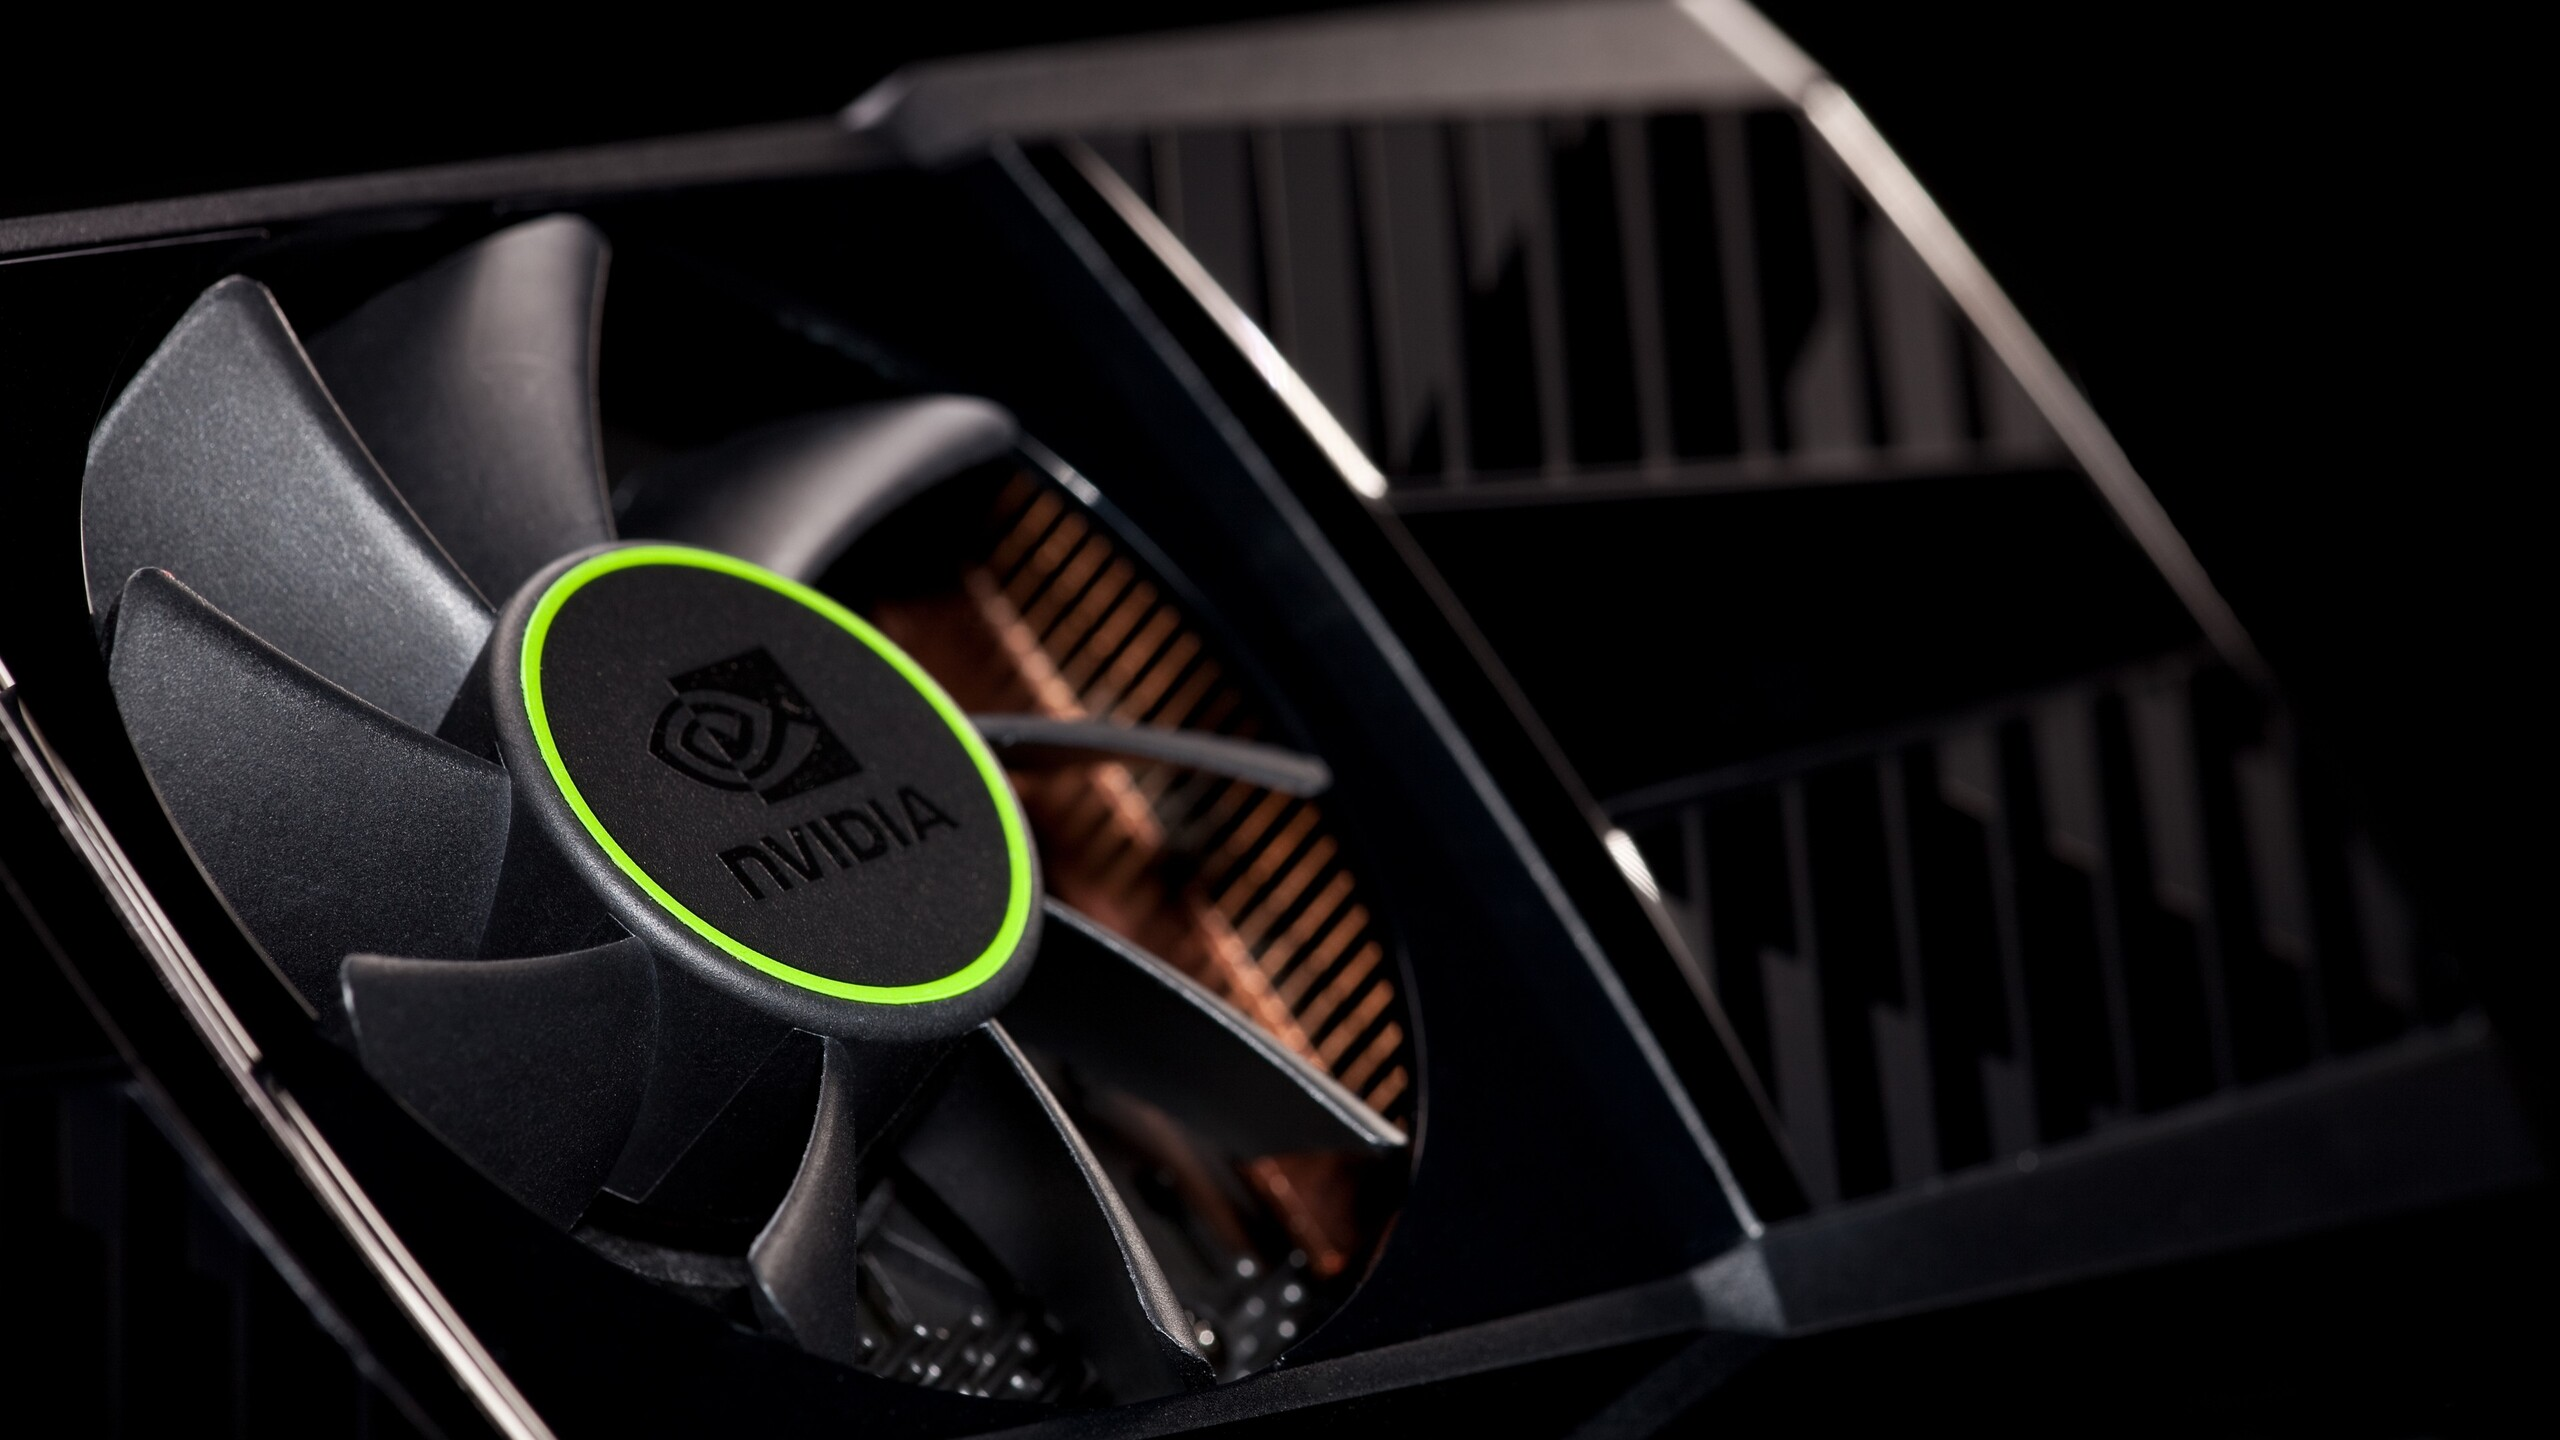 nvidia-graphic-card-fan-on.jpg